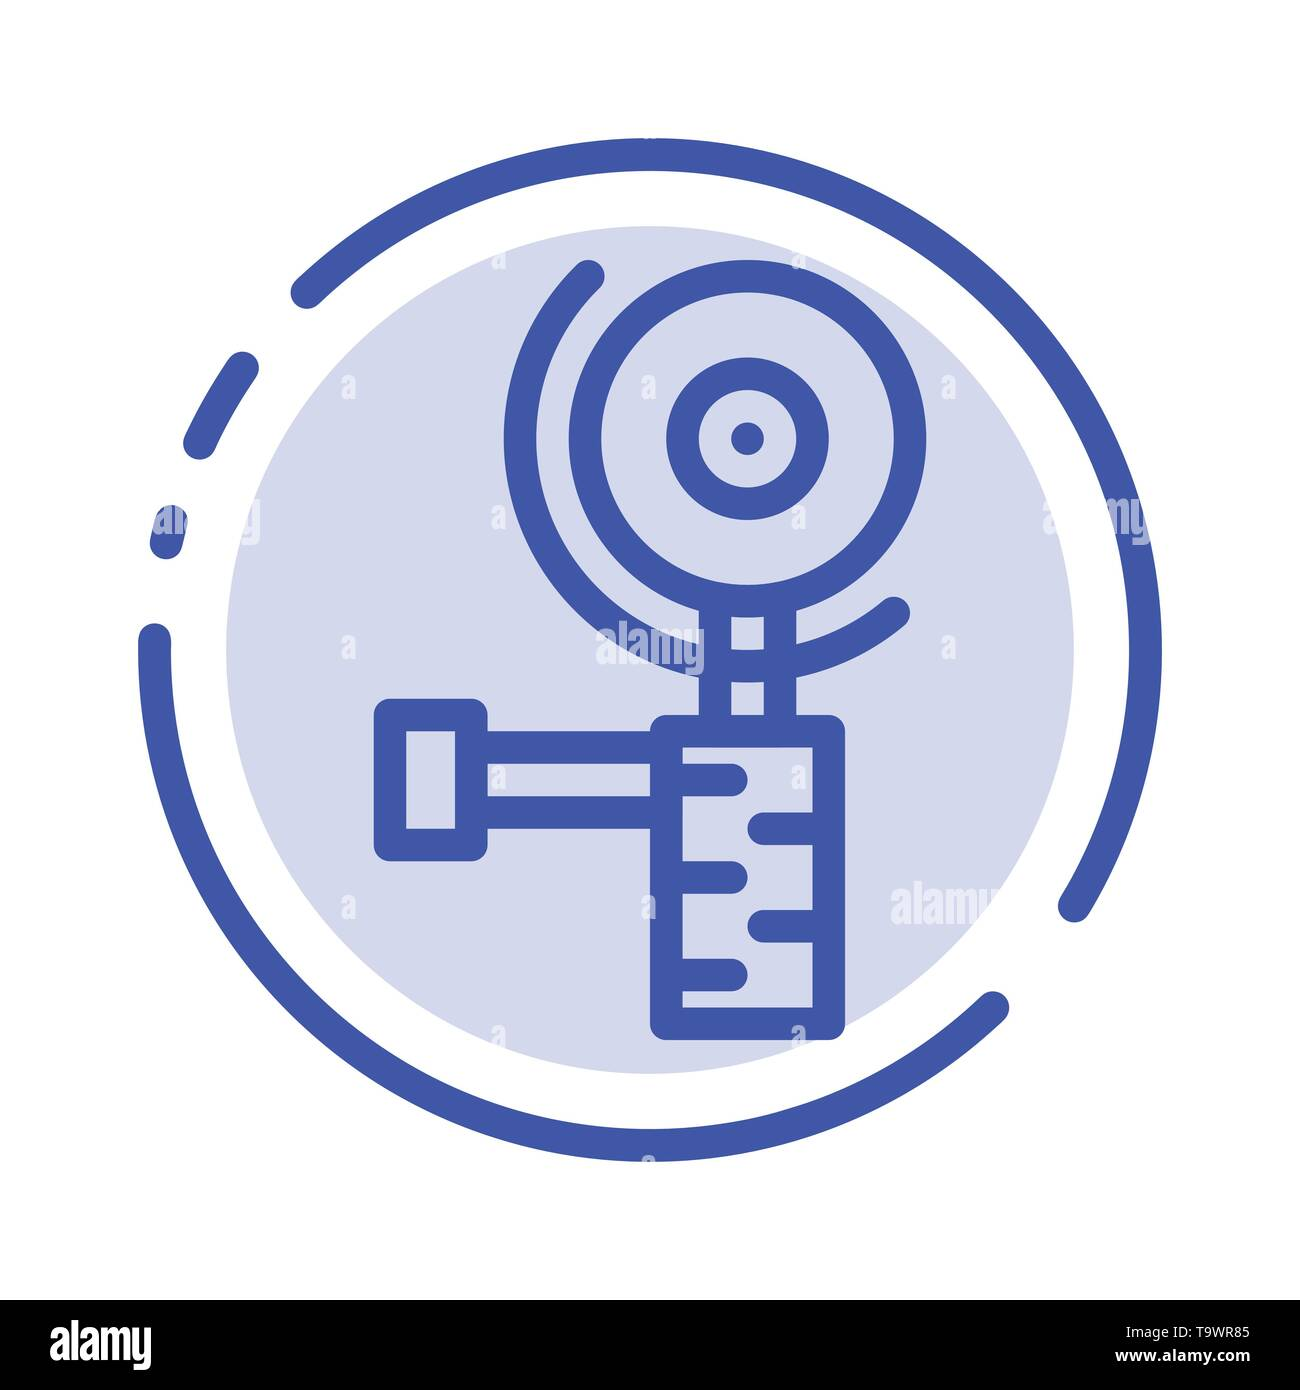 Construction, Grinder, Grinding Blue Dotted Line Line Icon - Stock Vector